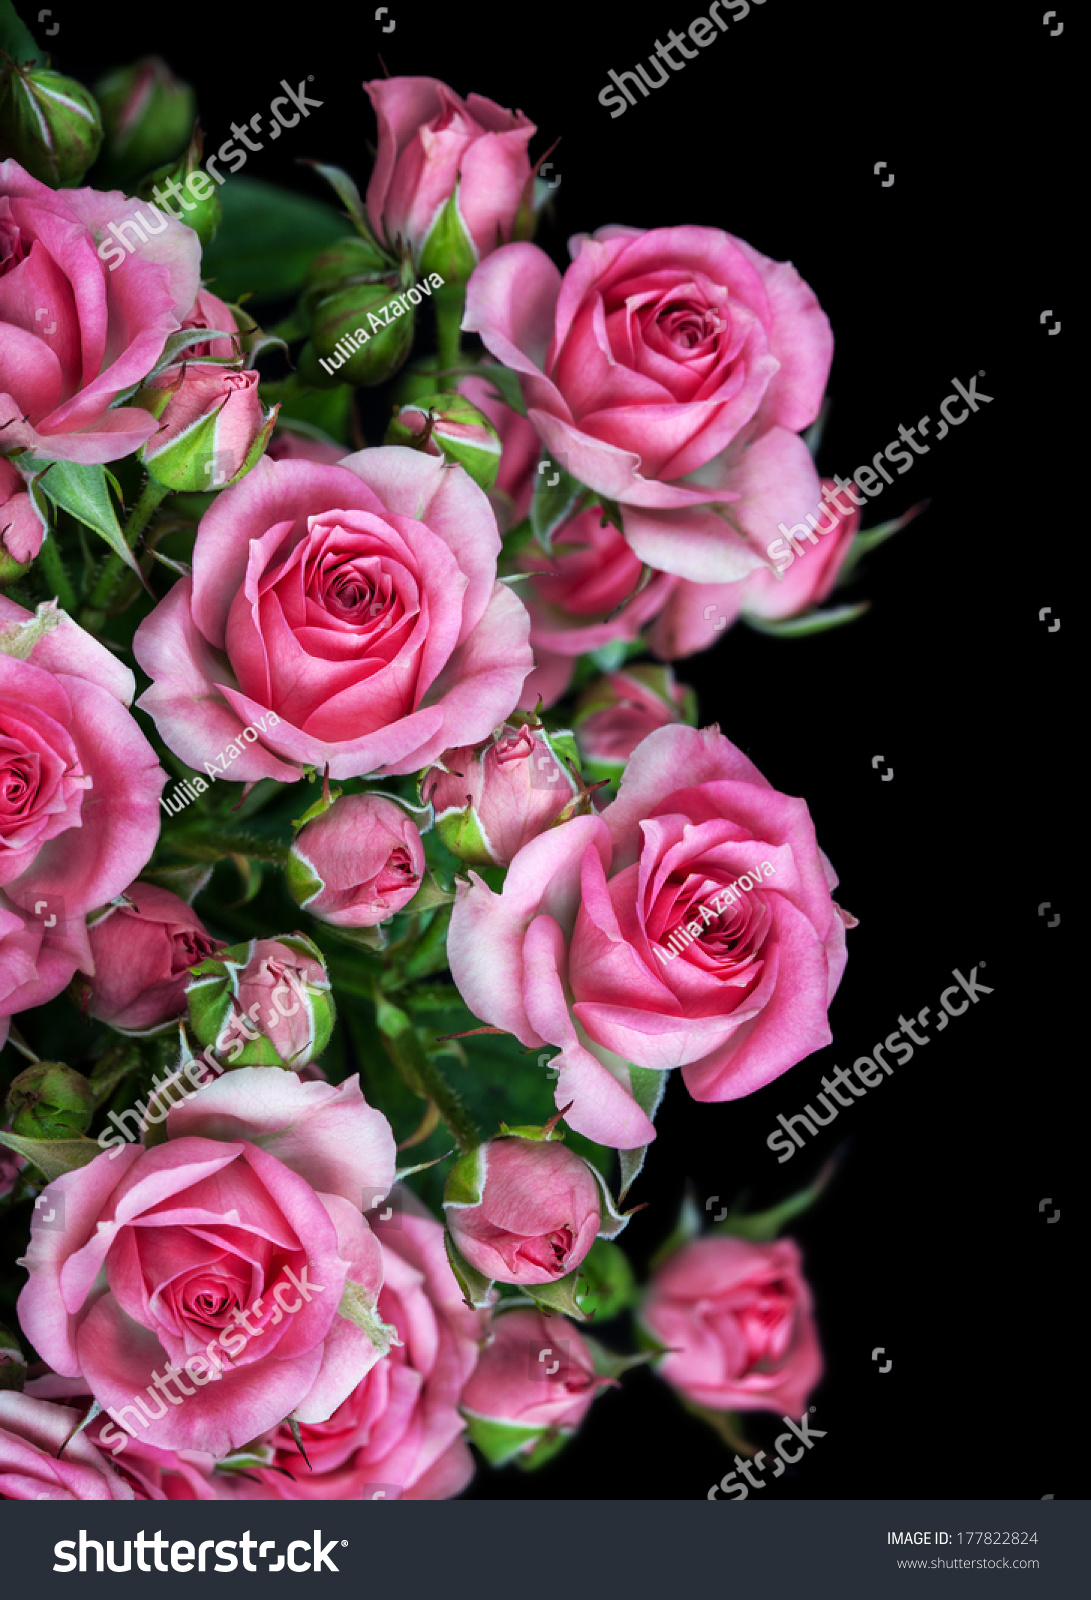 Big Pink Roses Bouquet Flowers Free Stock Photo (Edit Now) 177822824 ...